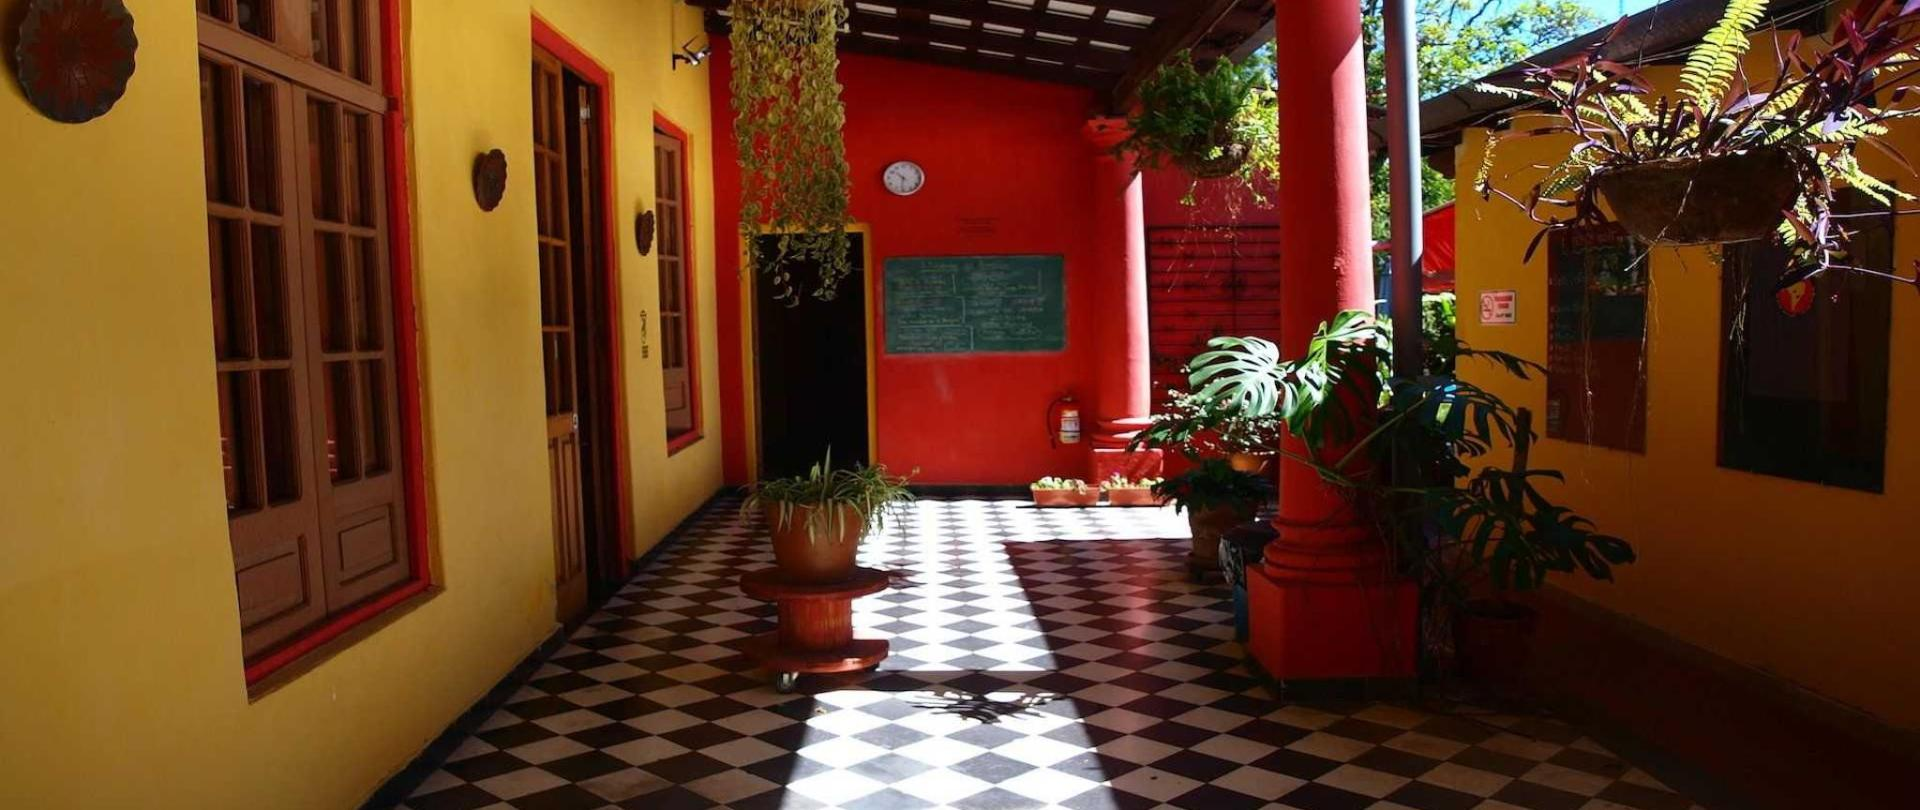 common-area-hostel-asuncion-nomada.JPG